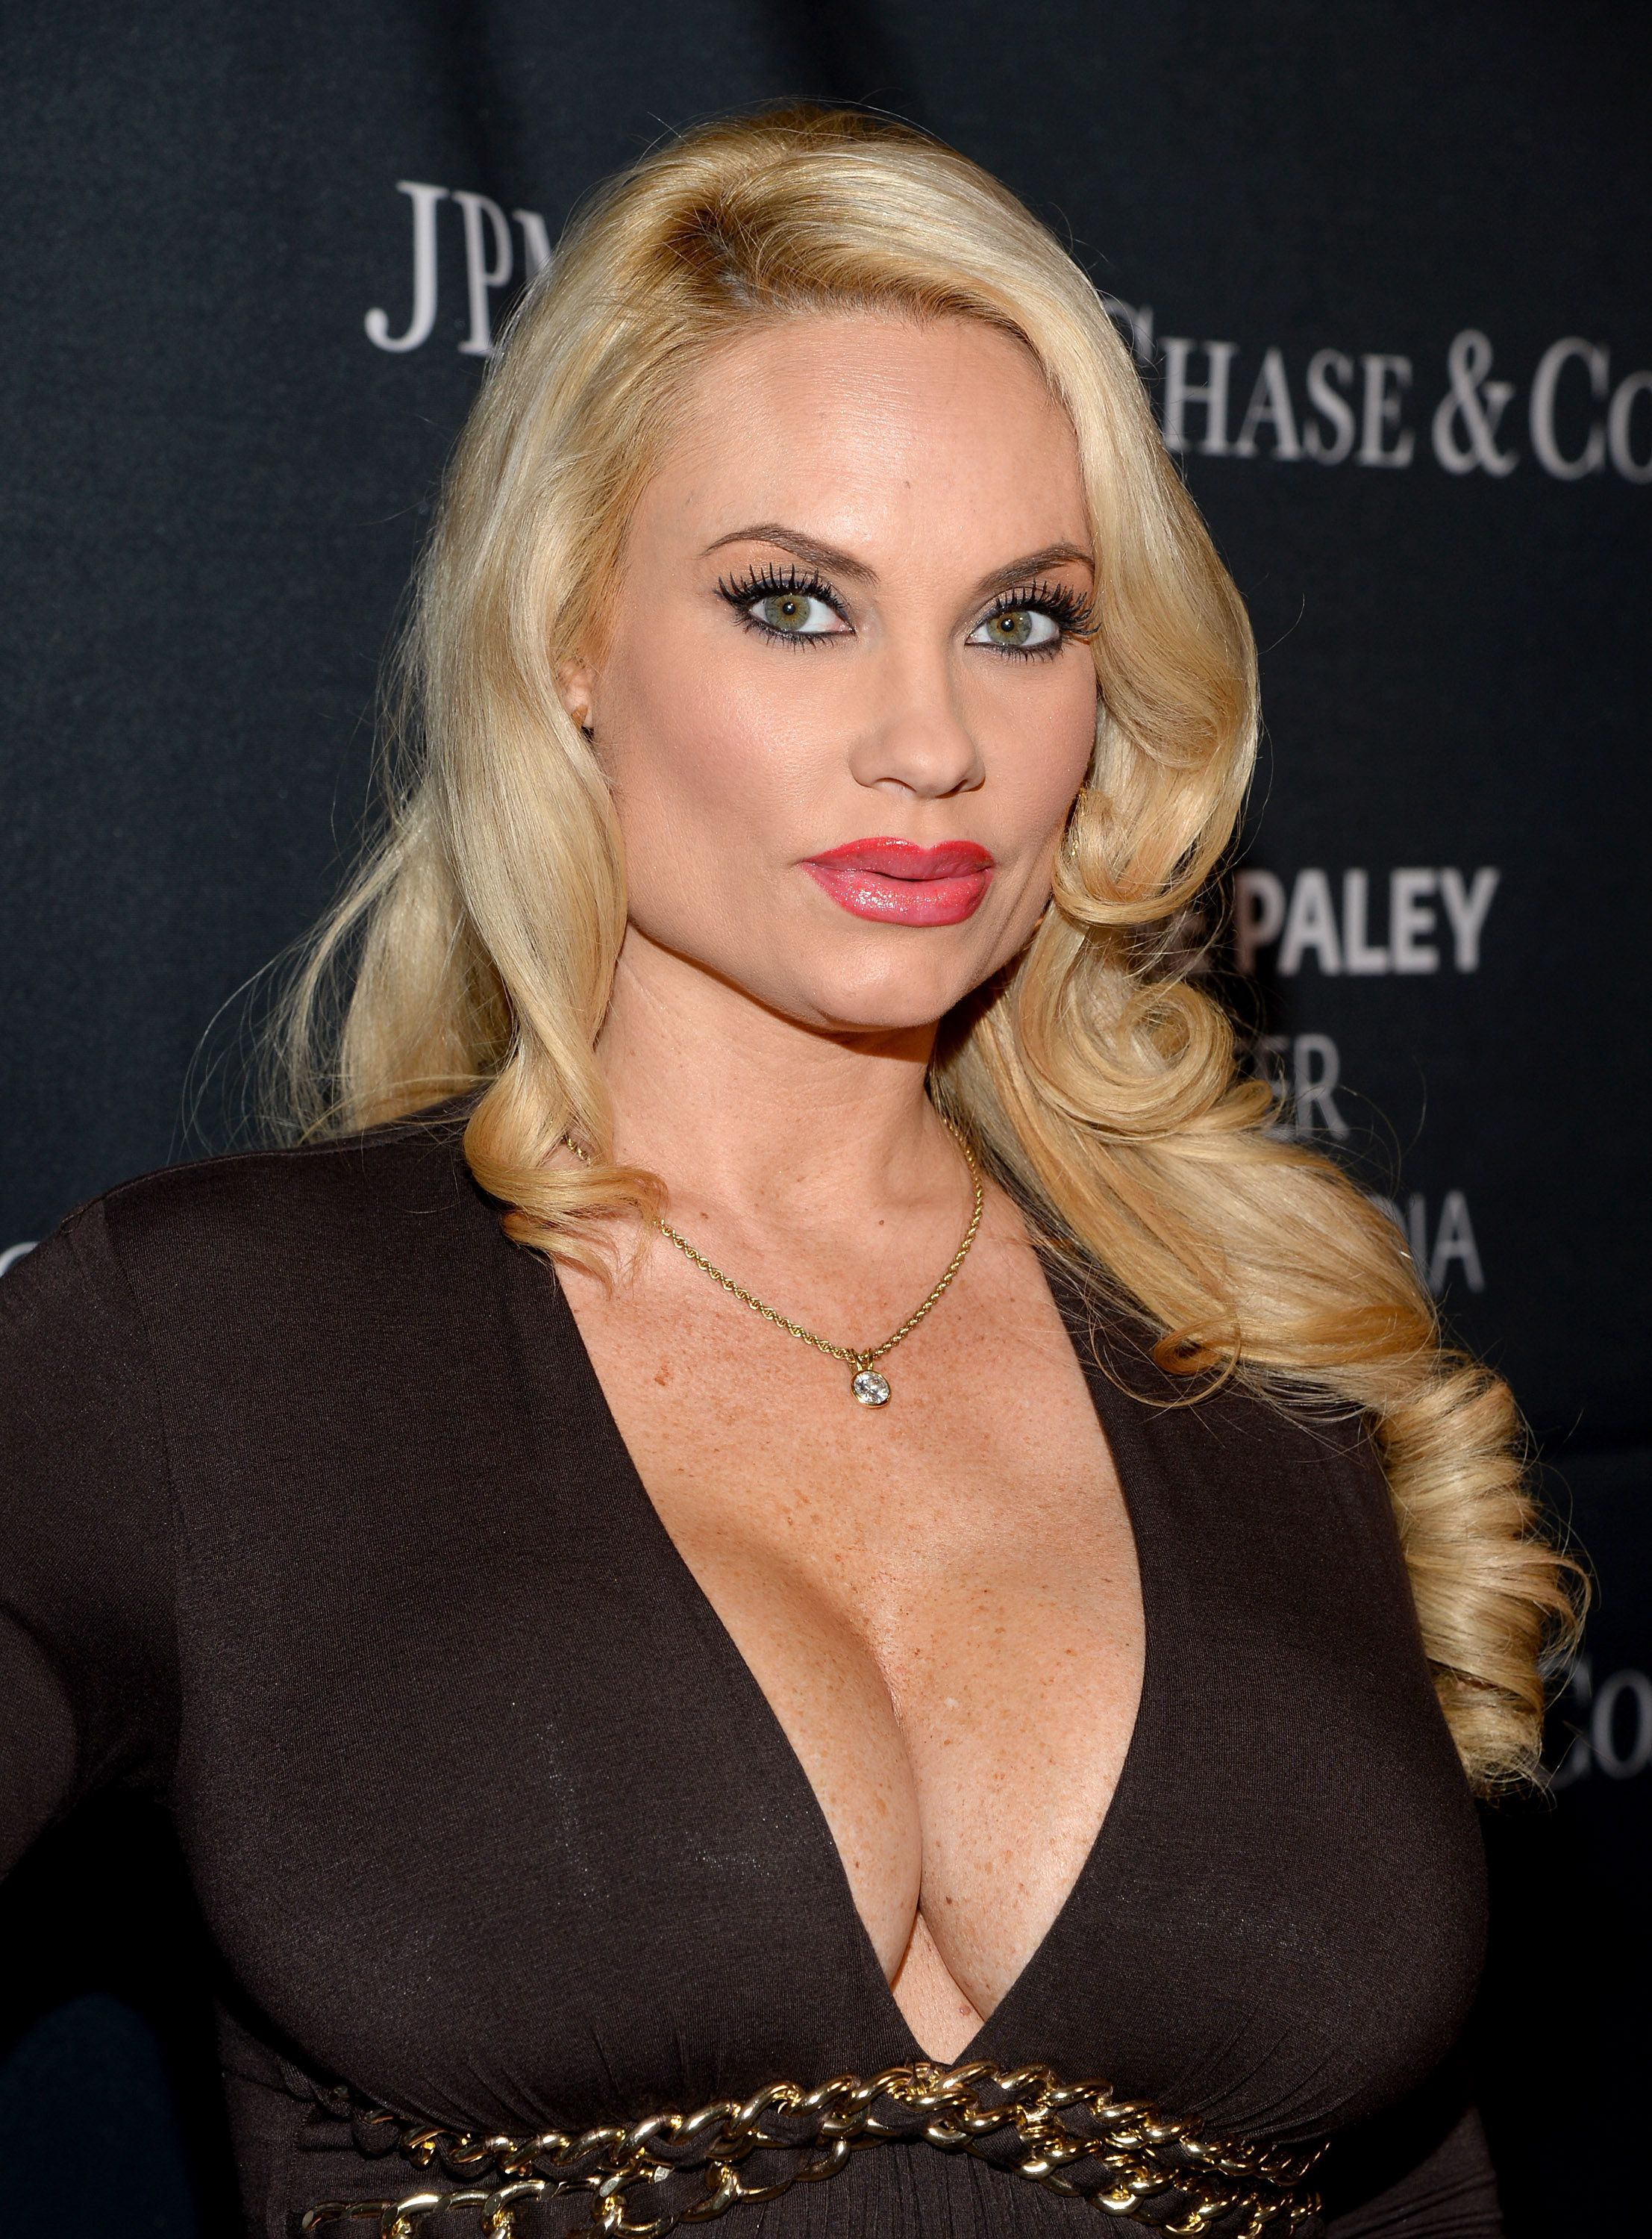 LOS ANGELES, CA - OCTOBER 26:  Coco Austin attends the Paley Center For Media's Hollywood Tribute To African-American Achievements in Television, Presented by JPMorgan & Co. on October 26, 2015 in Los Angeles, California.  (Photo by Michael Kovac/Getty Images for Paley Center For Media)